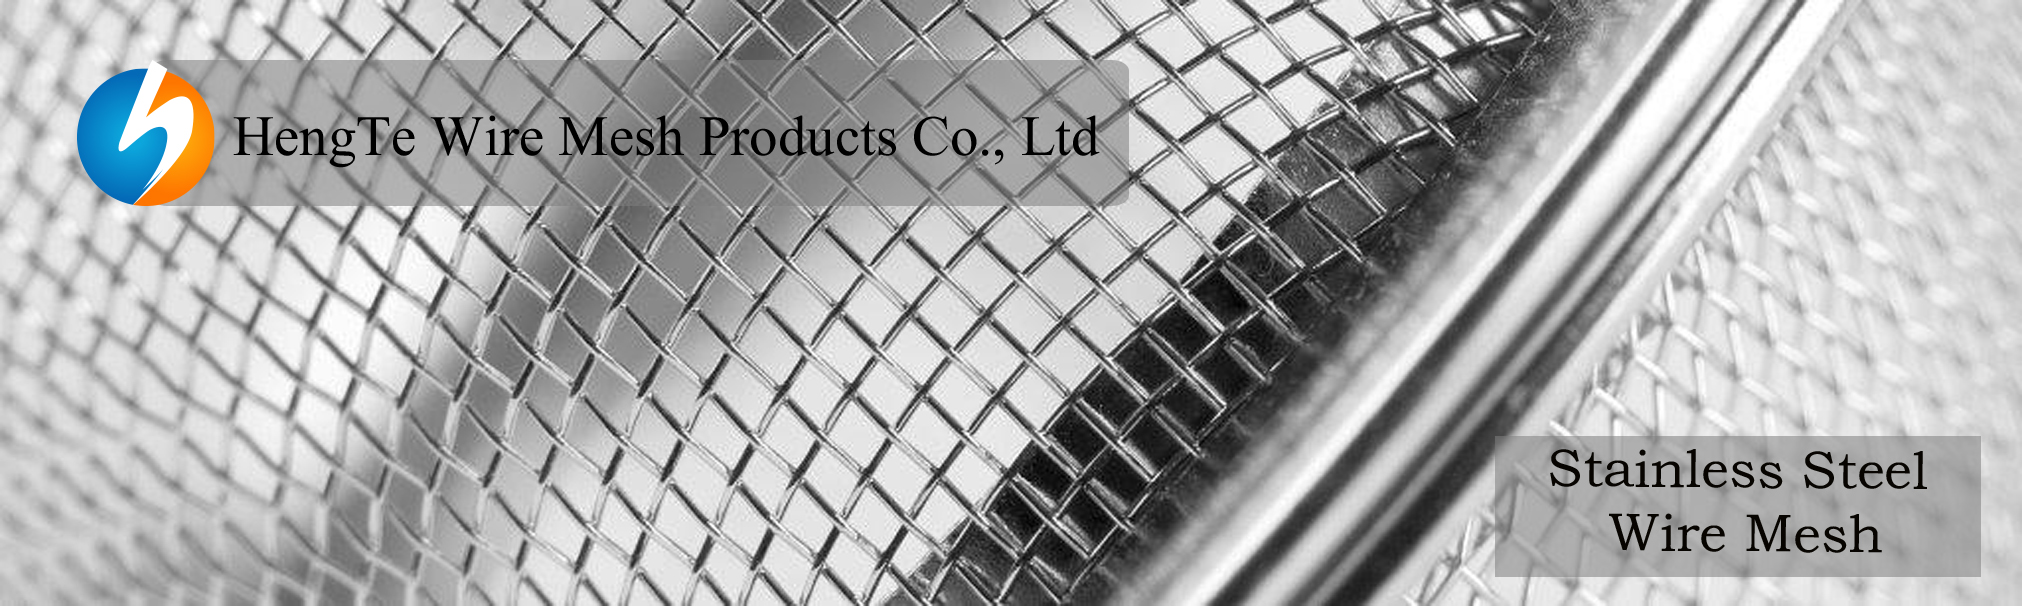 Fiberglass Mesh Cloth Supplier